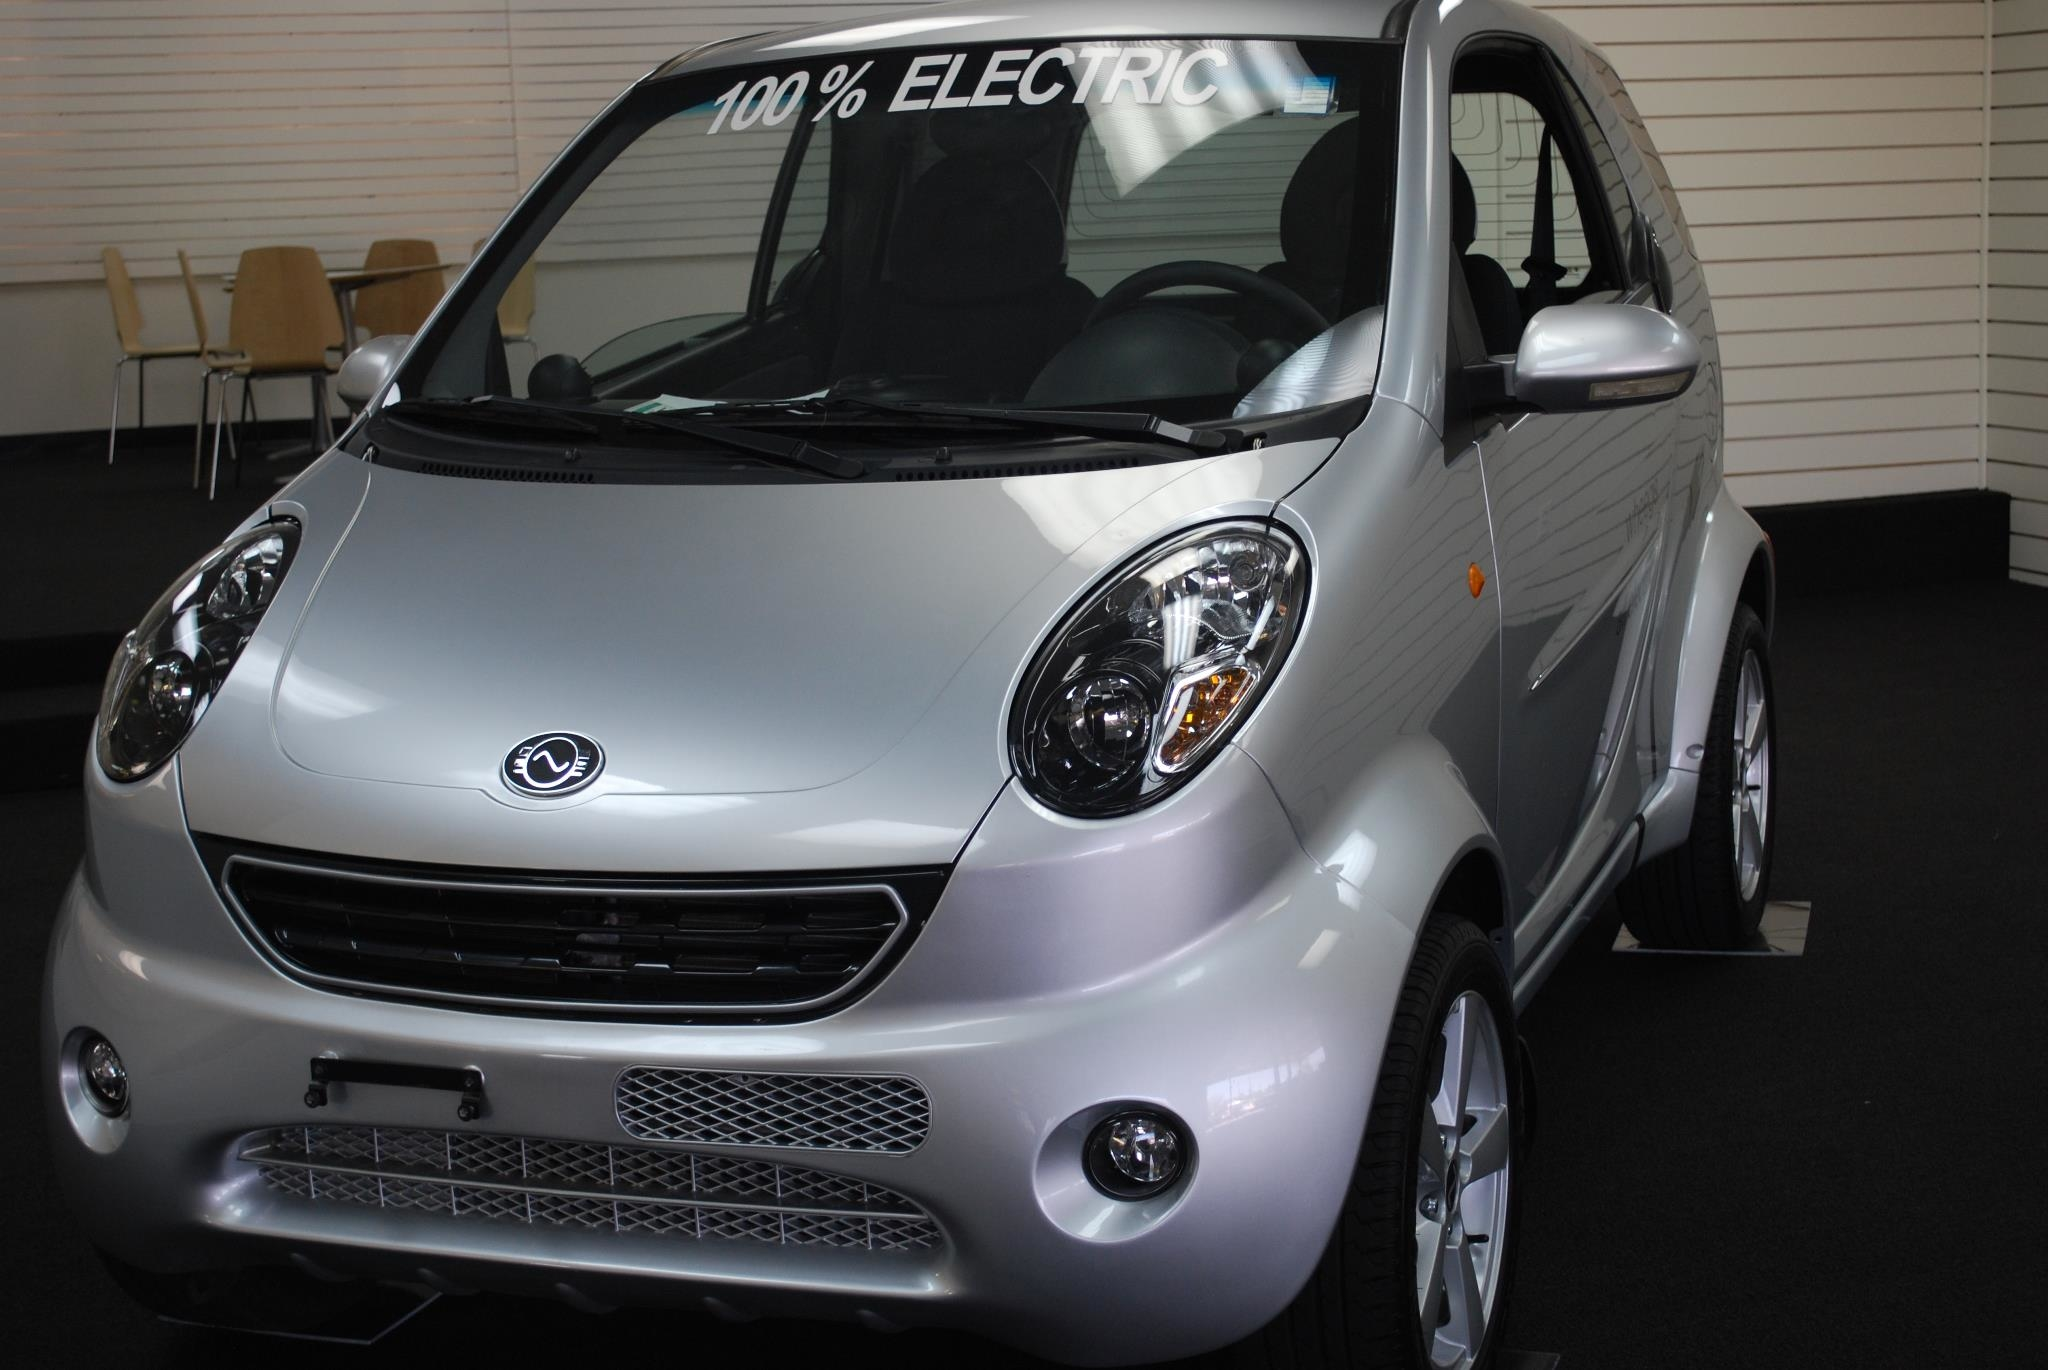 Georgia Wheego Electric CARS and Preowned Cars